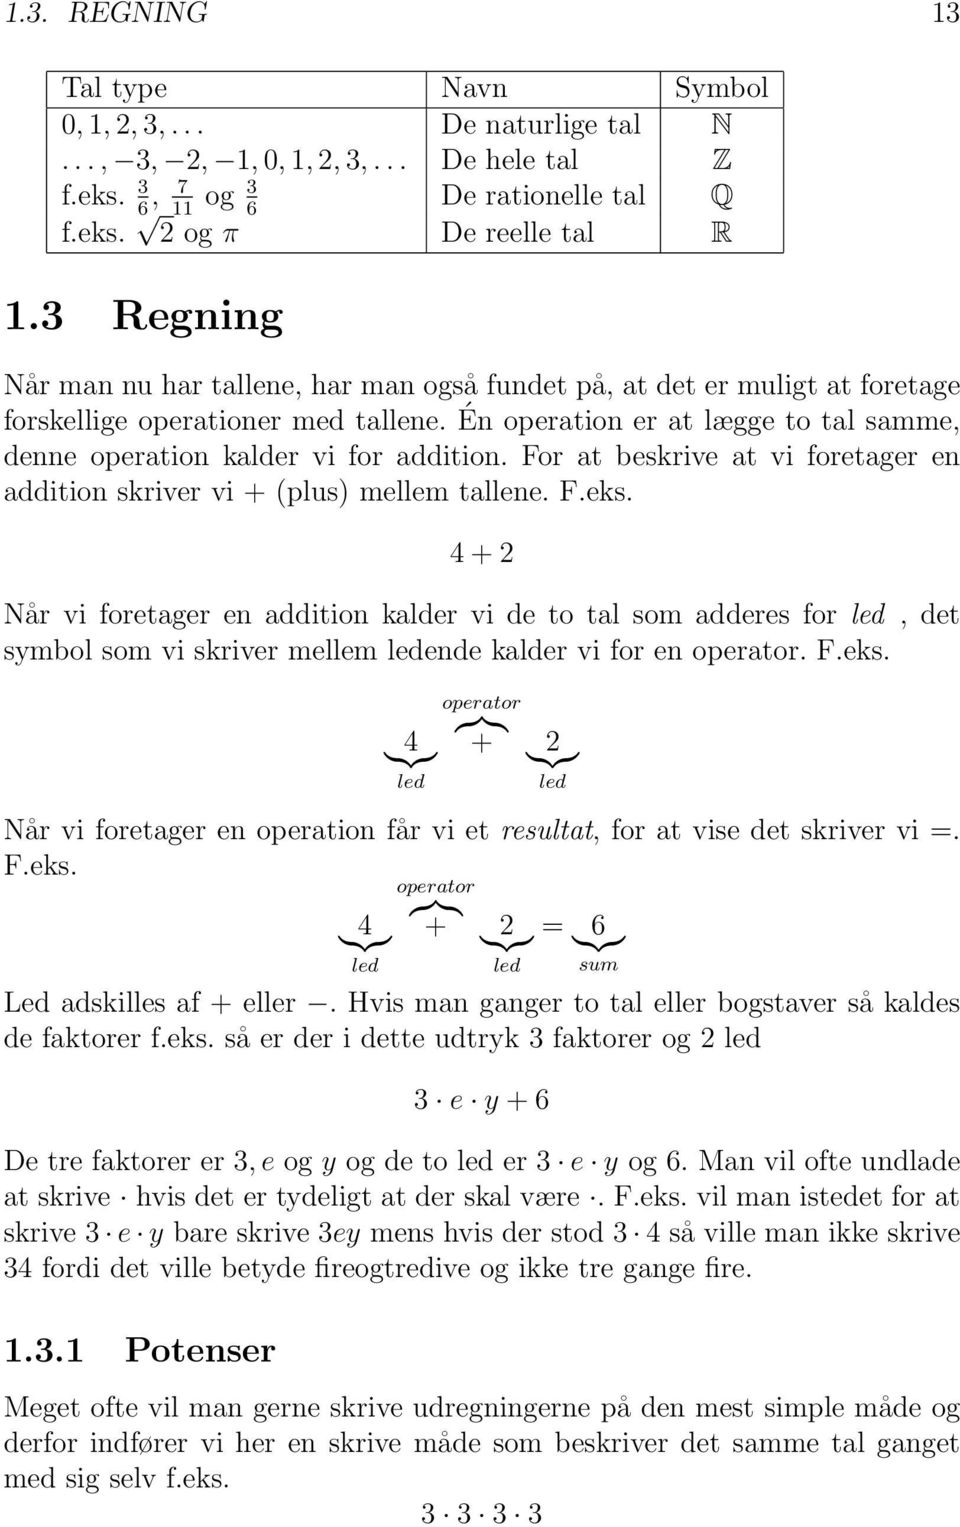 Én operation er at lægge to tal samme, denne operation kalder vi for addition. For at beskrive at vi foretager en addition skriver vi + (plus) mellem tallene. F.eks.